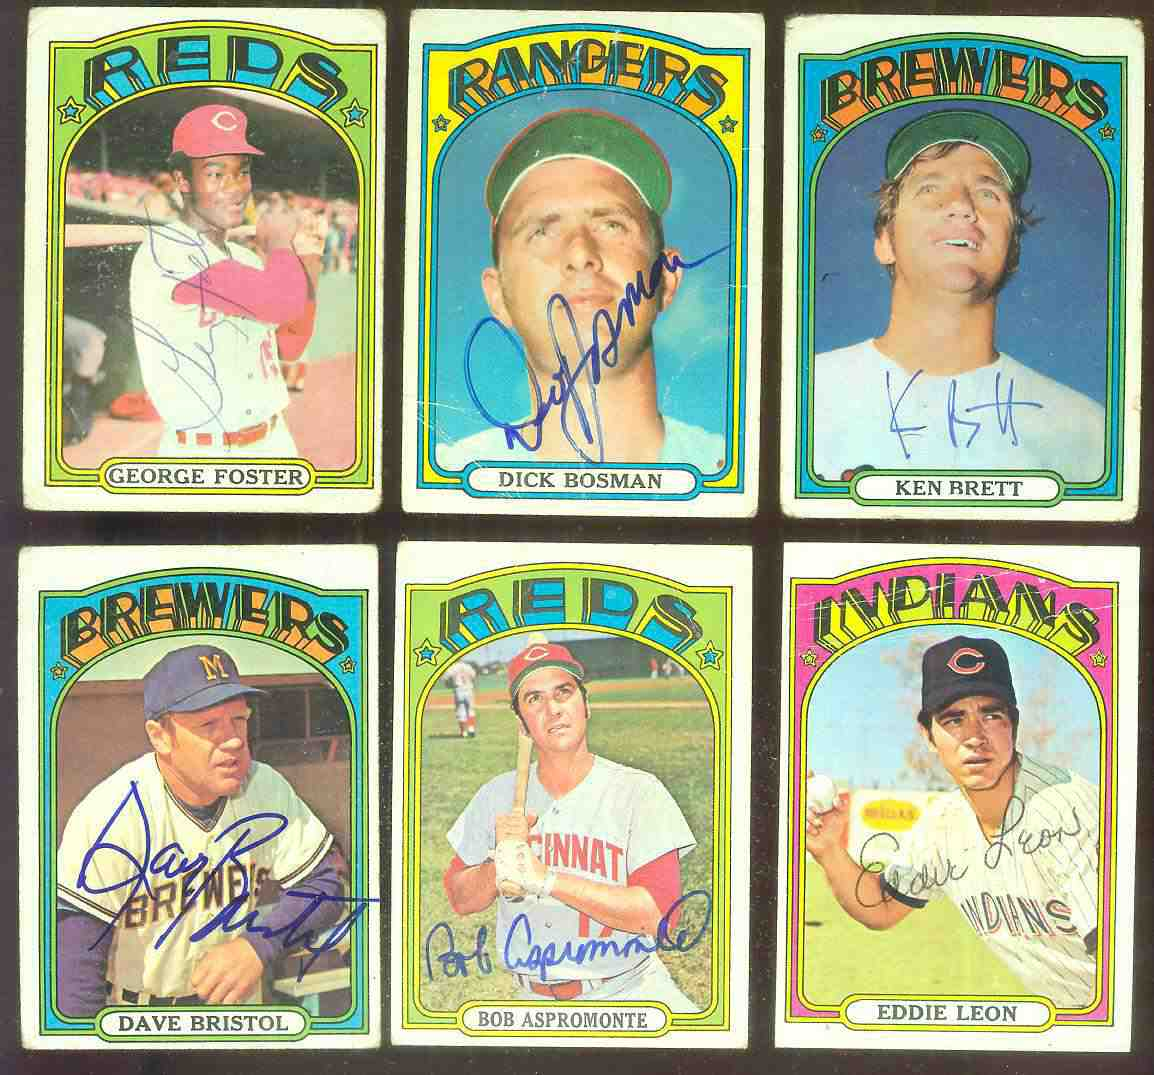 AUTOGRAPHED: 1972 Topps #659 Bob Aspromonte SCARCE HIGH #.PSA/DNA LOA (Reds Baseball cards value